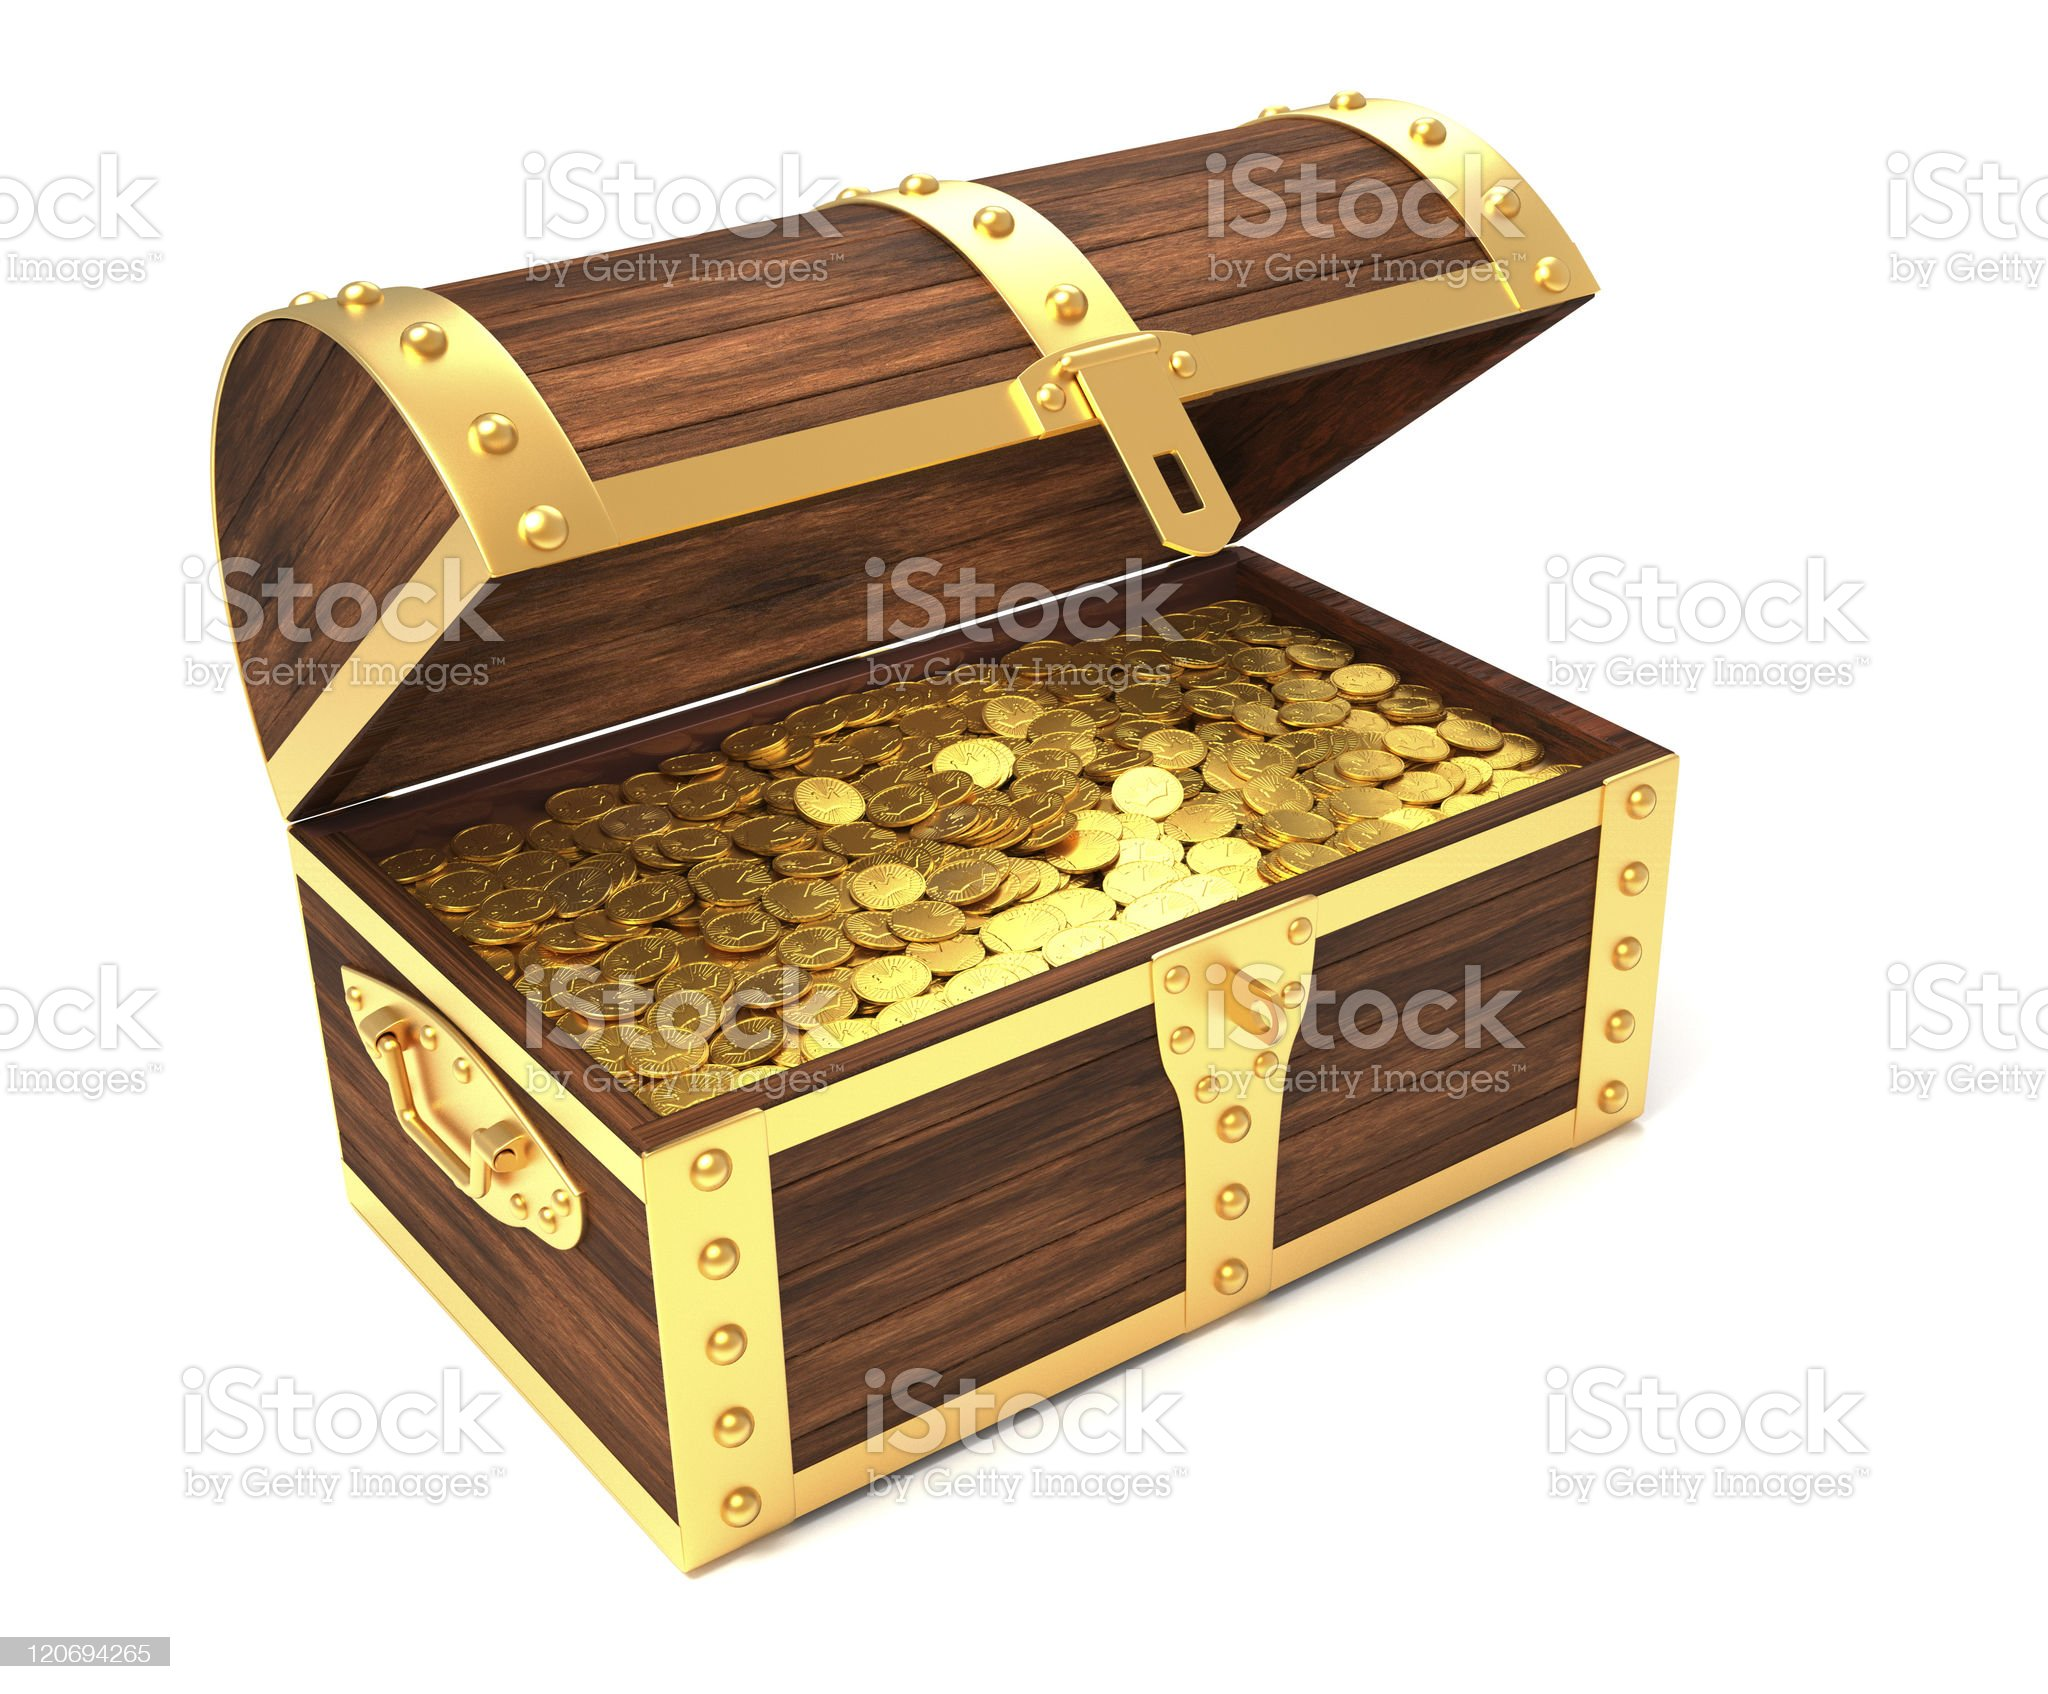 Wooden treasure chest with gold coins royalty-free stock photo